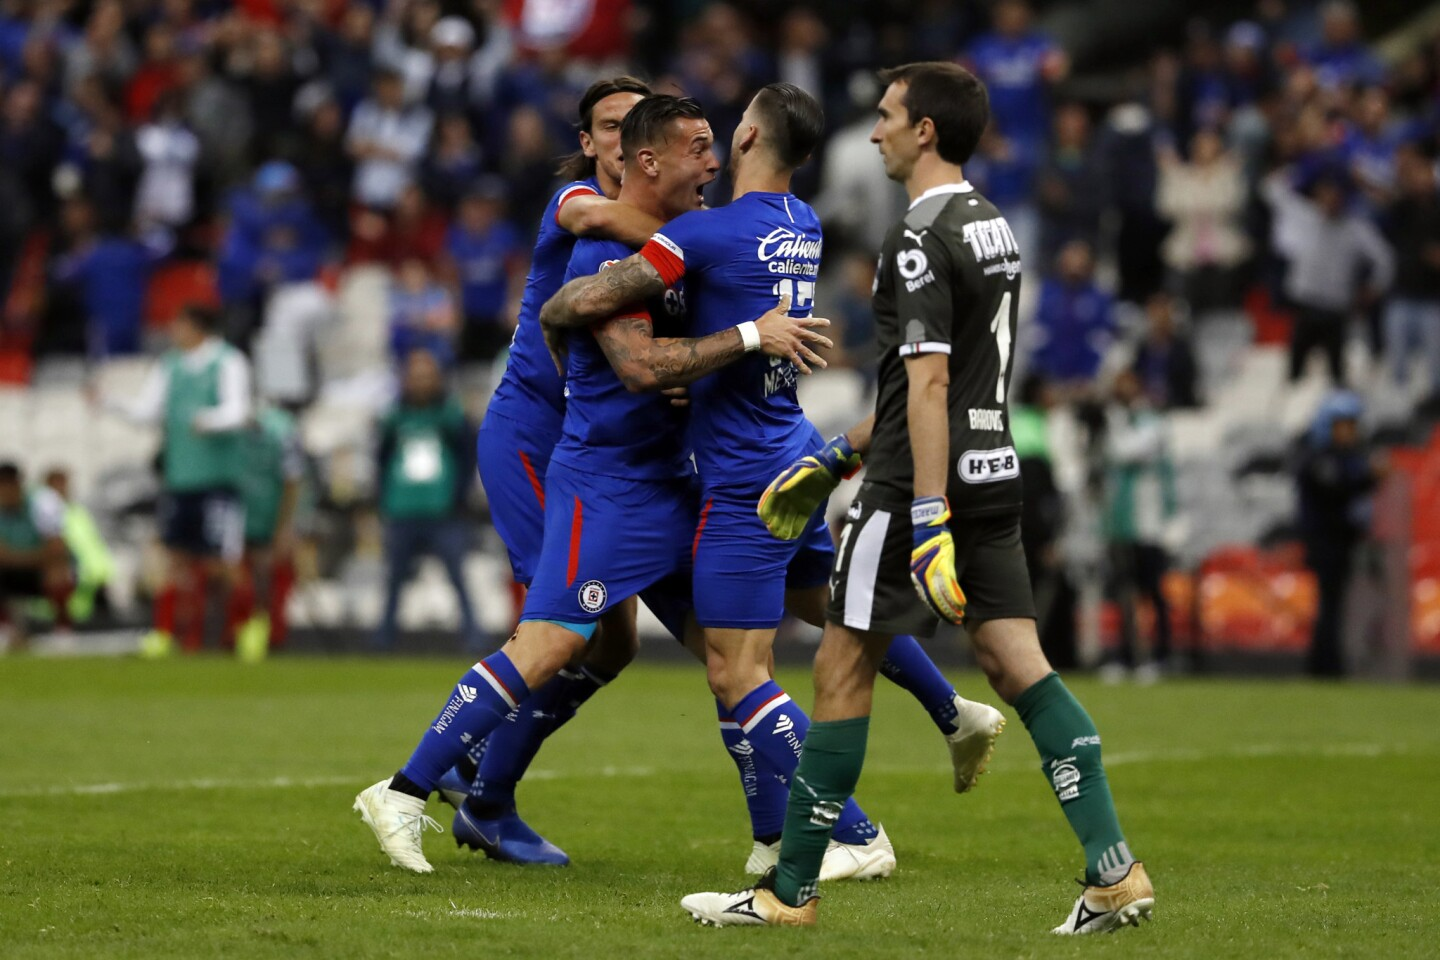 Cruz Azul players celebrate a goal scored by Milton Caraglio, second from left, against Monterrey during a Mexico soccer league second leg semifinals match against Monterrey at Azteca stadium in Mexico City, Saturday, Dec. 8, 2018. (AP Photo/Moises Castillo)